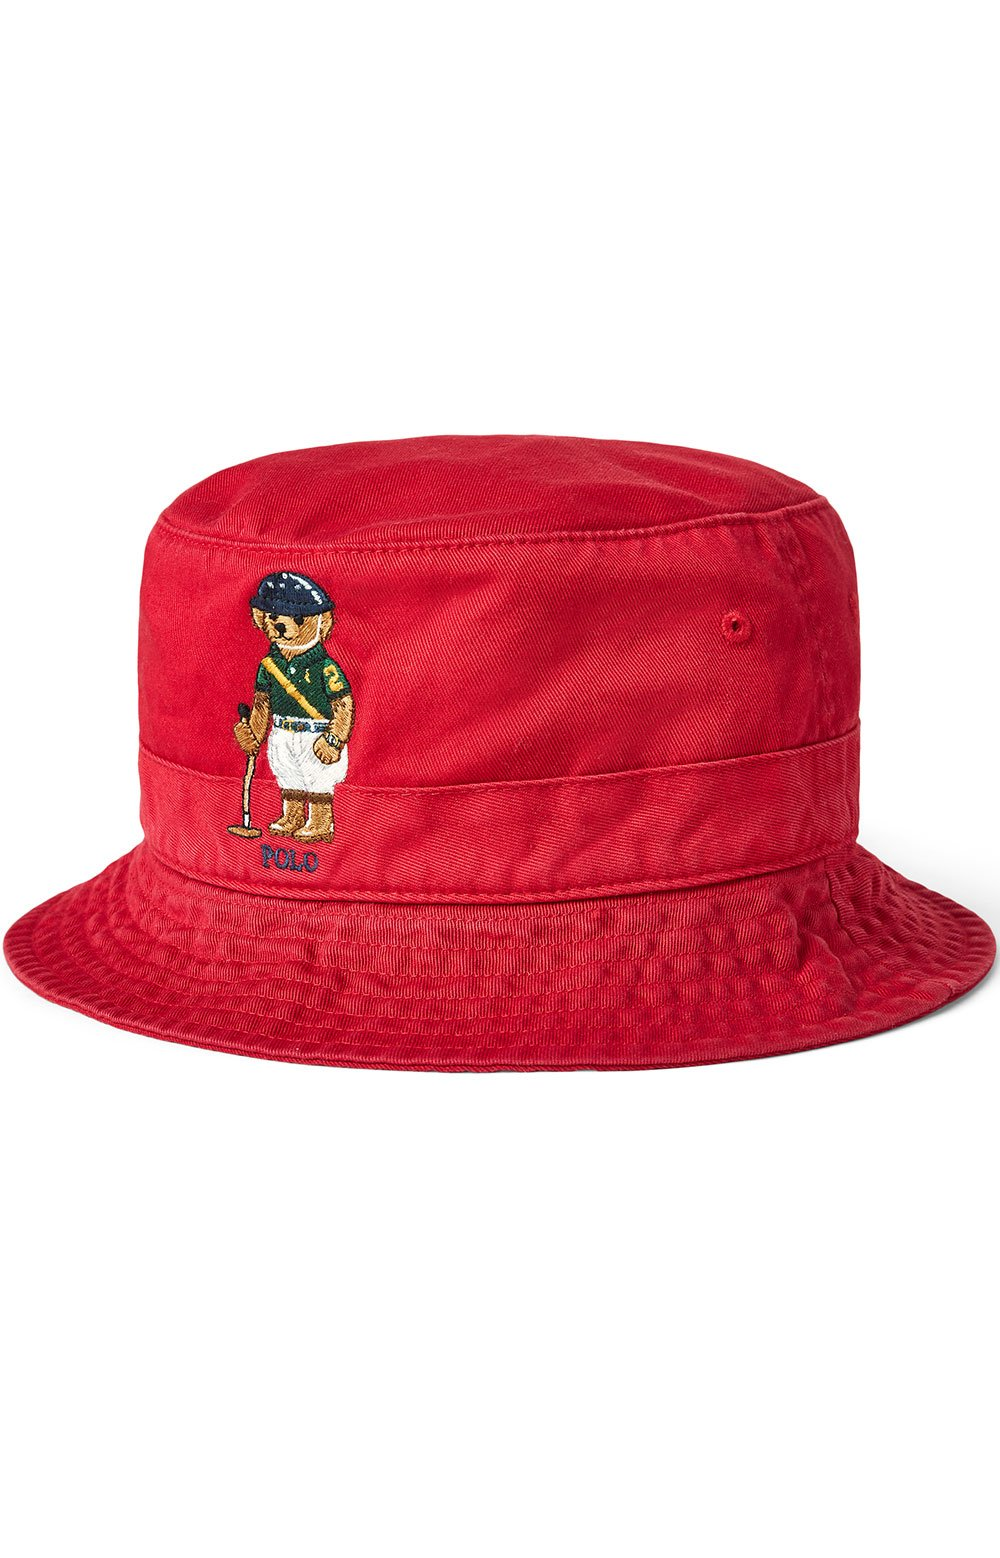 Polo Bear Chino Bucket Hat - Red